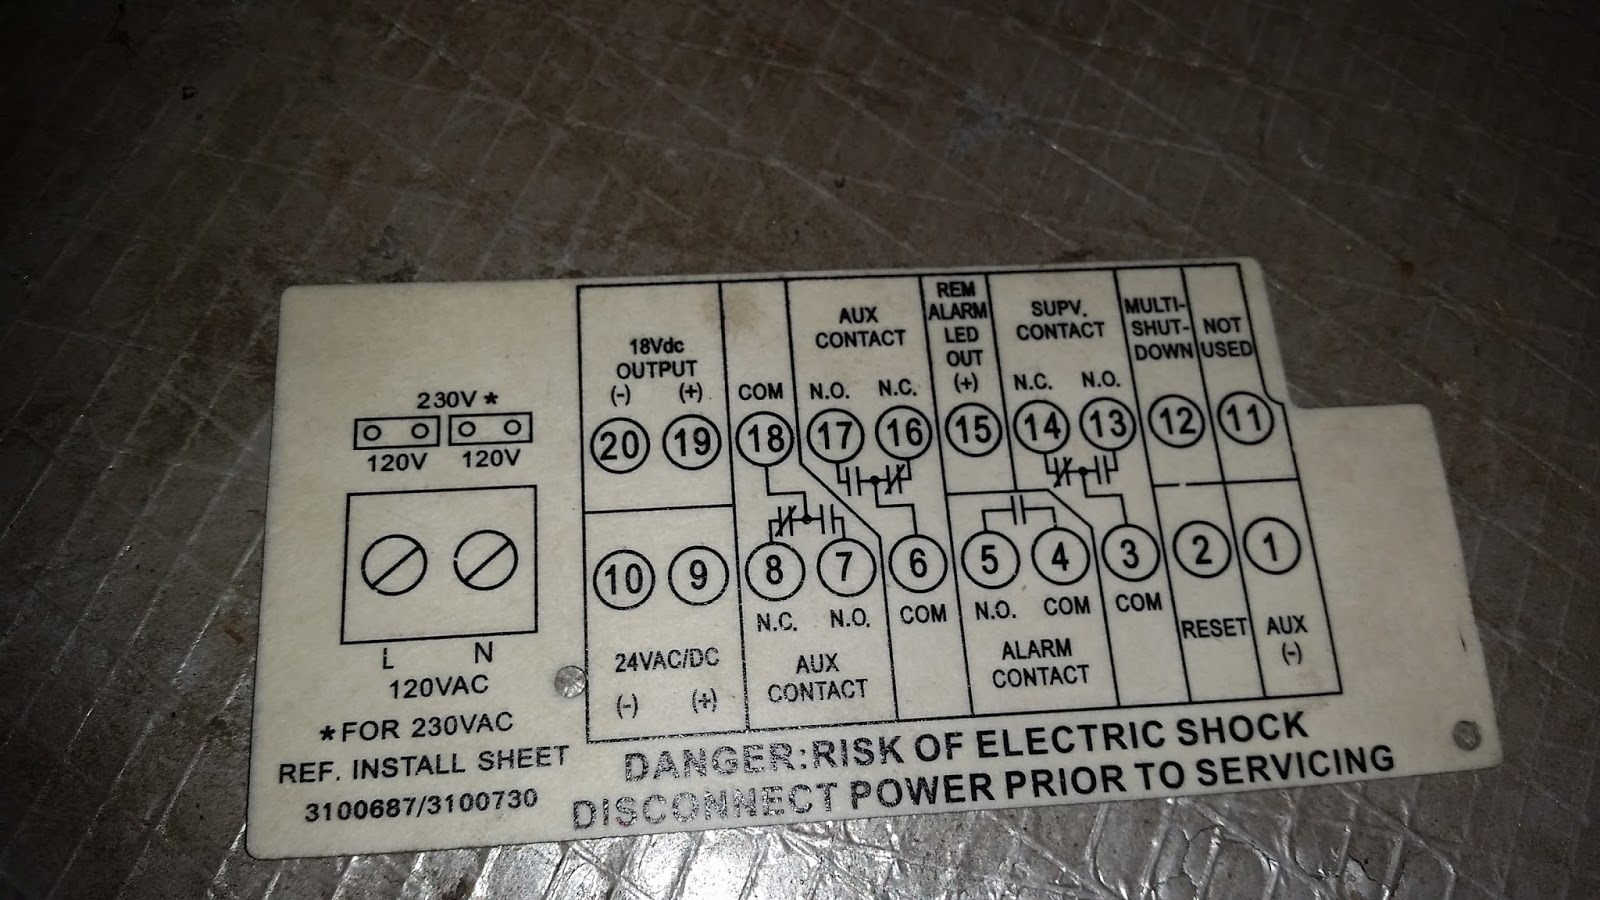 Nicks Fire Electrical Safety Security Blog 2017 Contacts Wiring Series As You Can See The On Detector Is Wired To Supervisory Terminals Of Duct 313 Instead Alarm 45 Where It Should